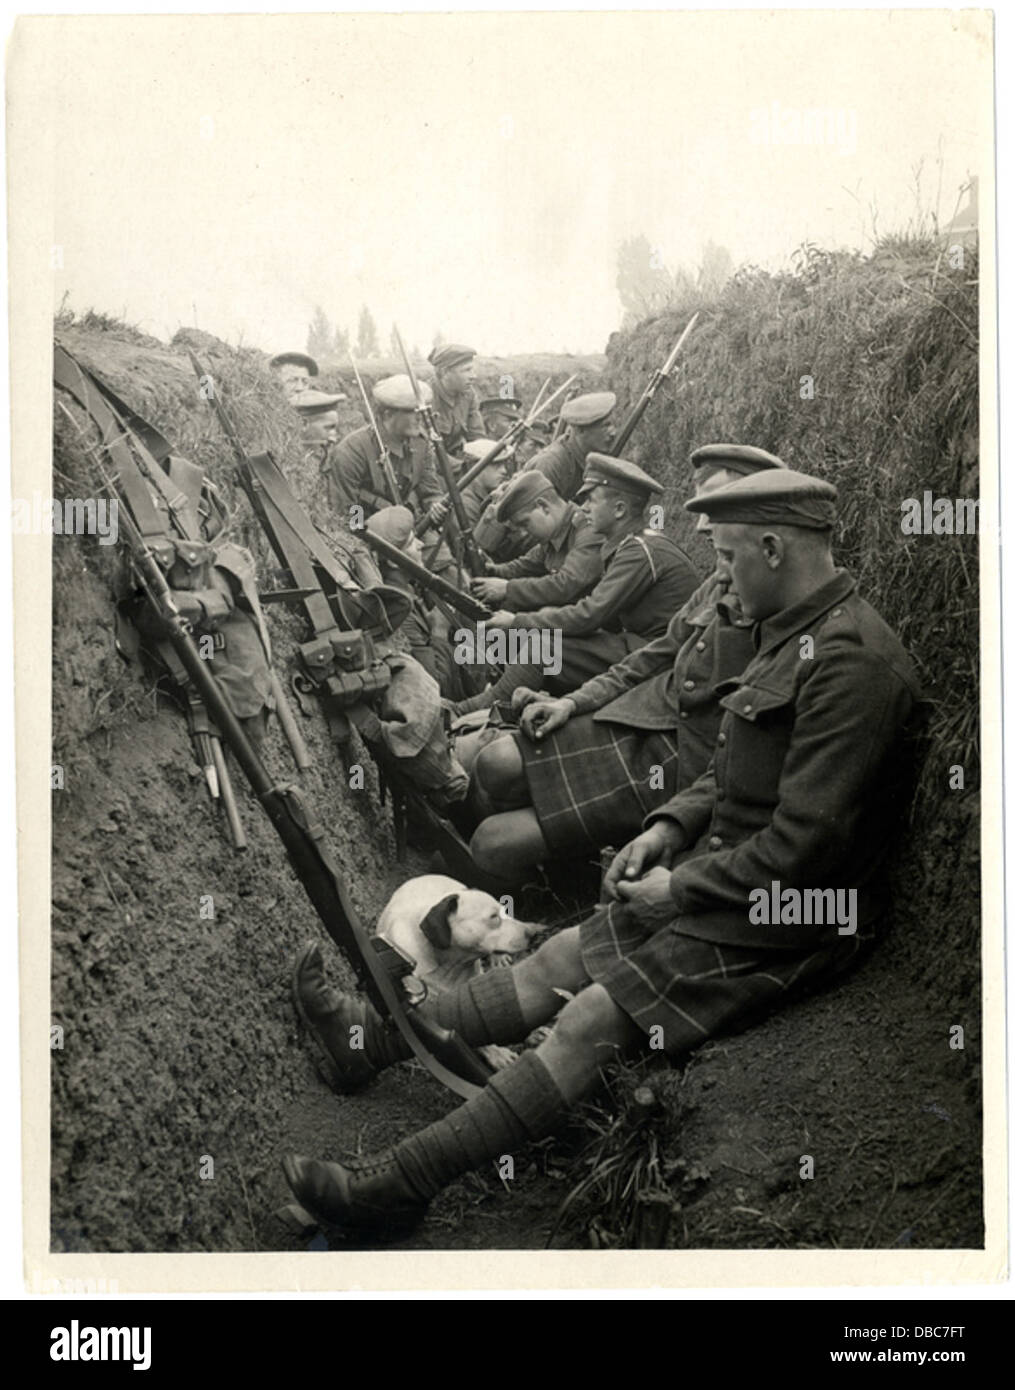 Highland Territorials in a trench (Photo 24-248) - Stock Image